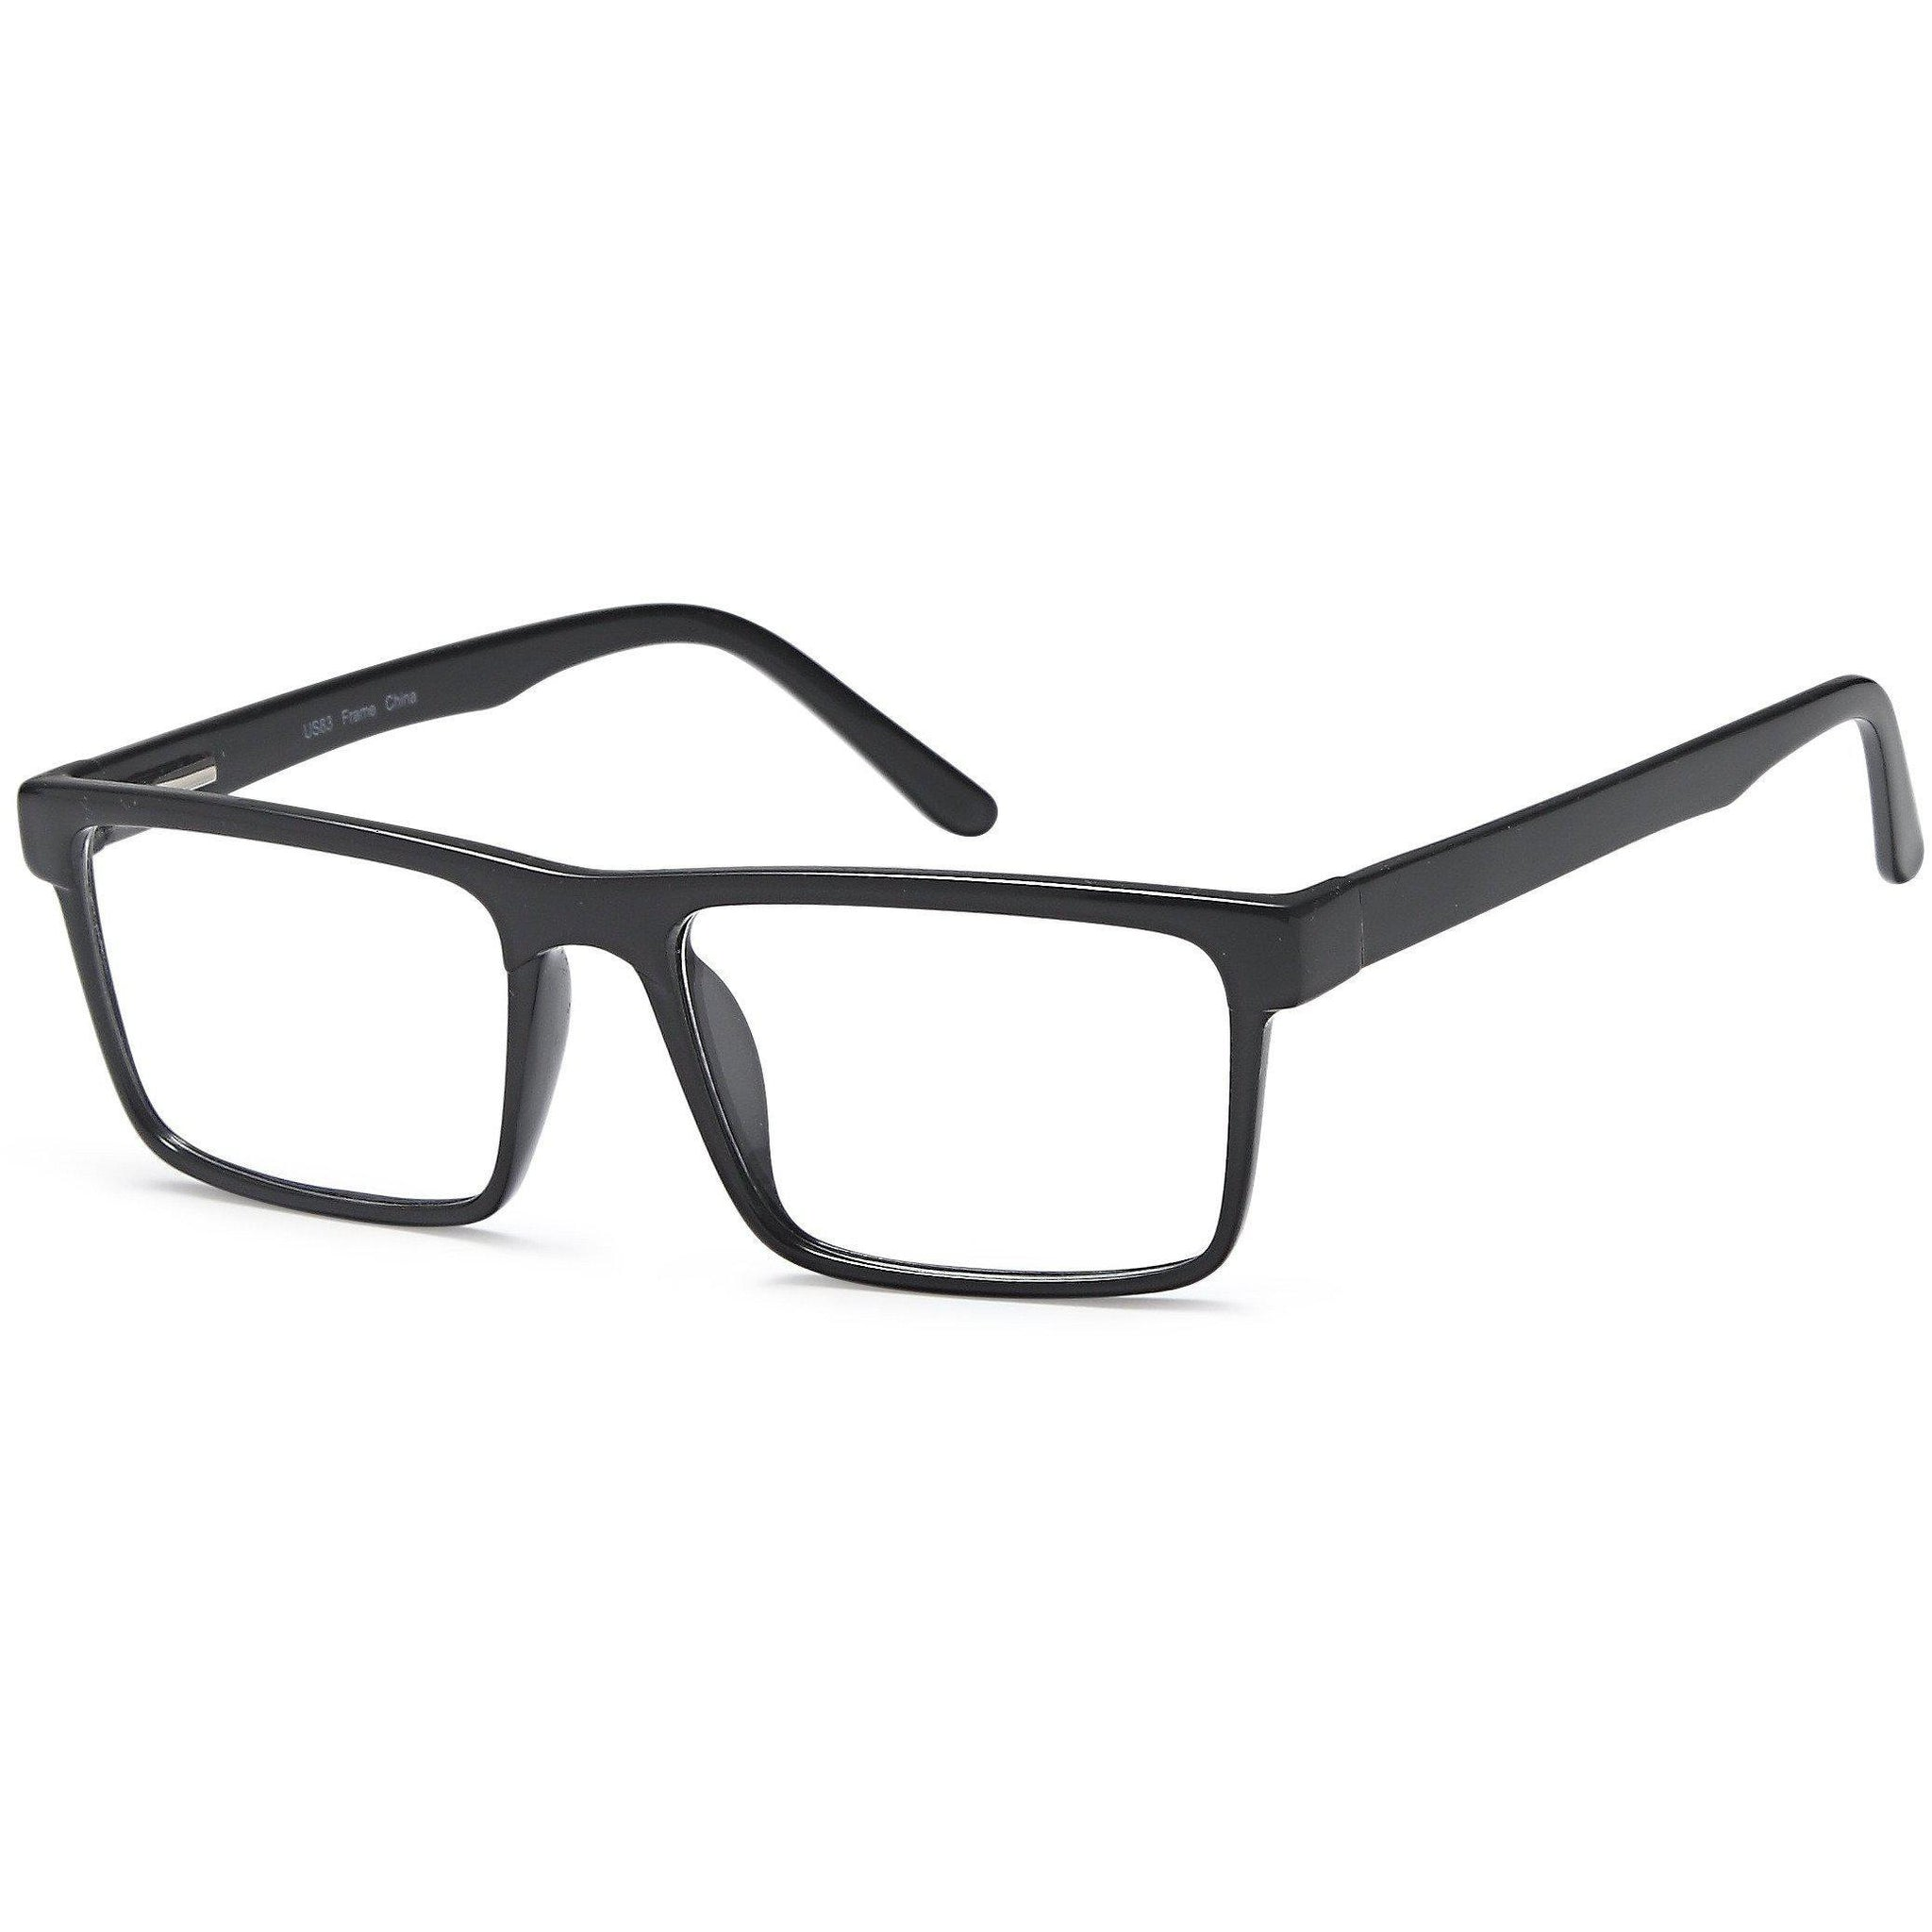 4U Prescription Glasses US 83 Optical Eyeglasses Frame - timetoshade